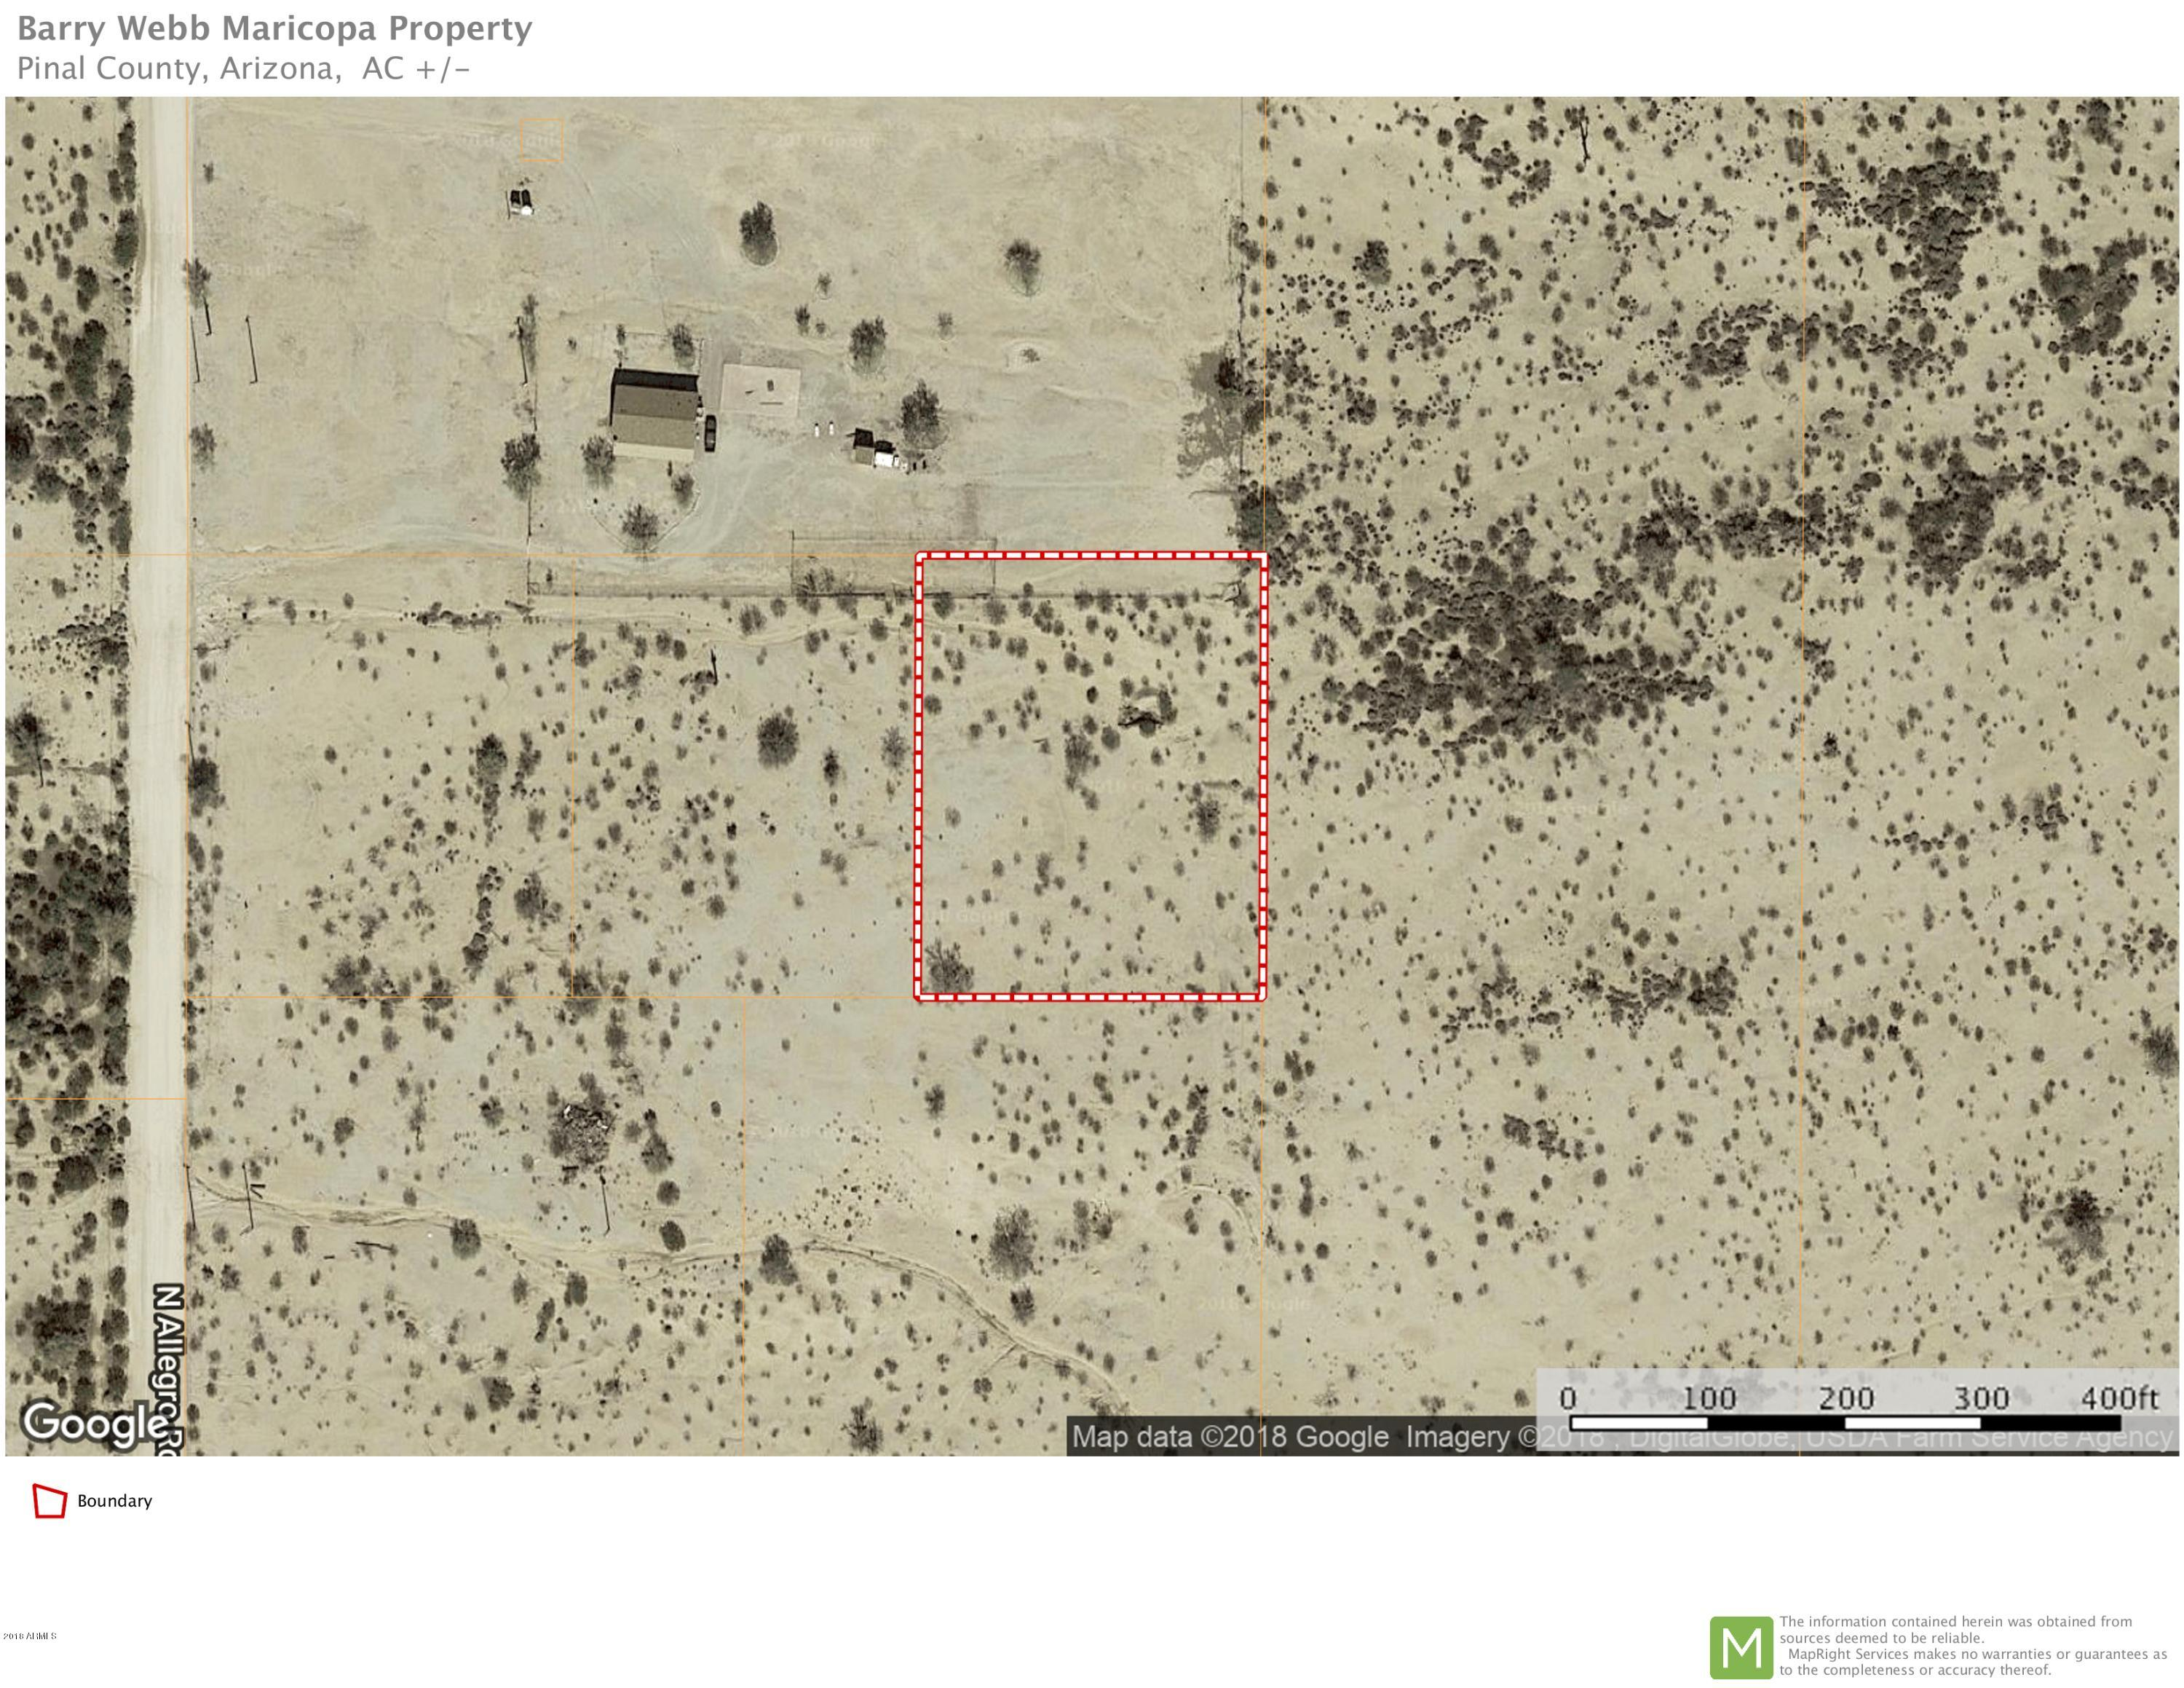 Land for Sale in Maricopa Arizona - Maricopa Arizona Lots ...